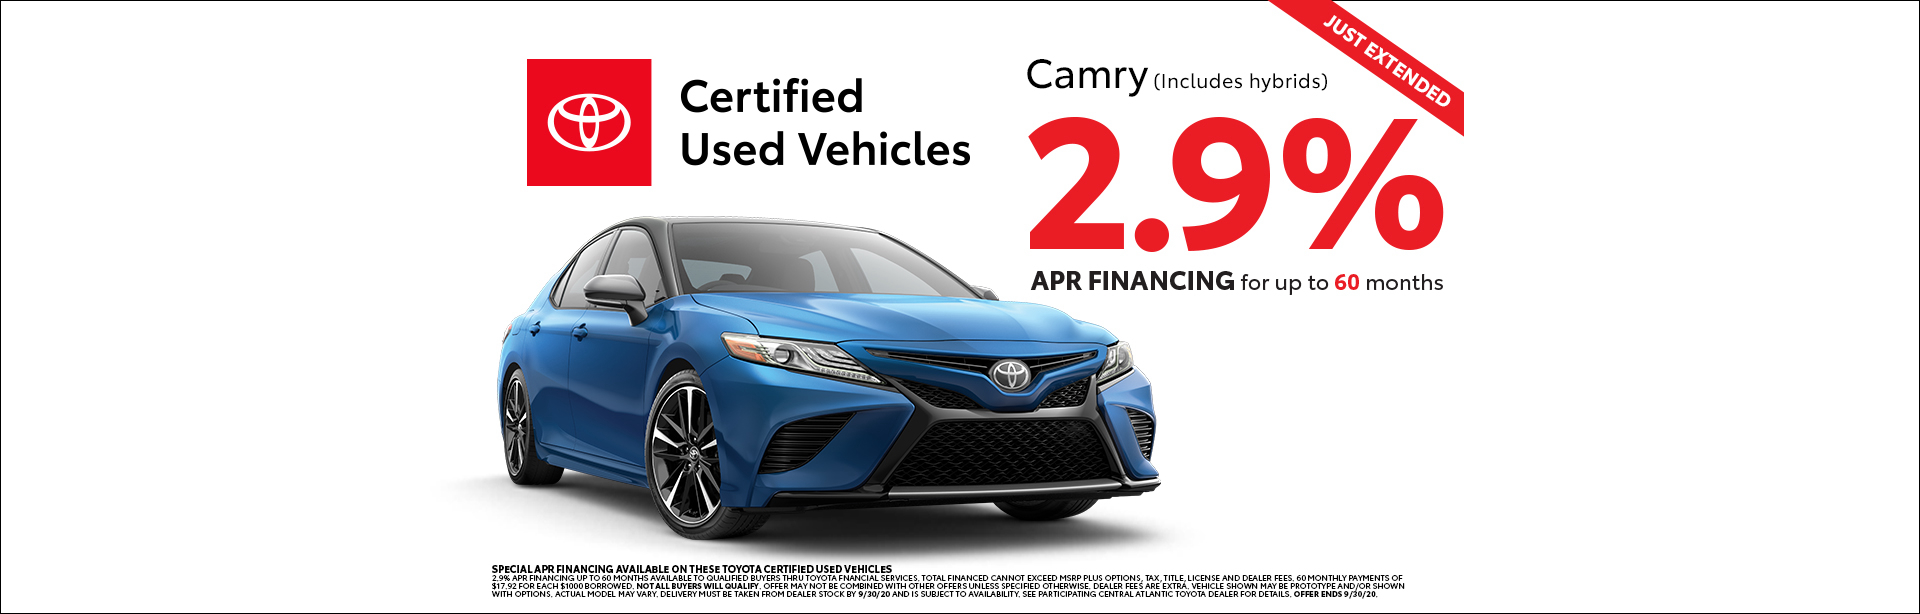 Toyota, Certified Used Vehicles, Camry